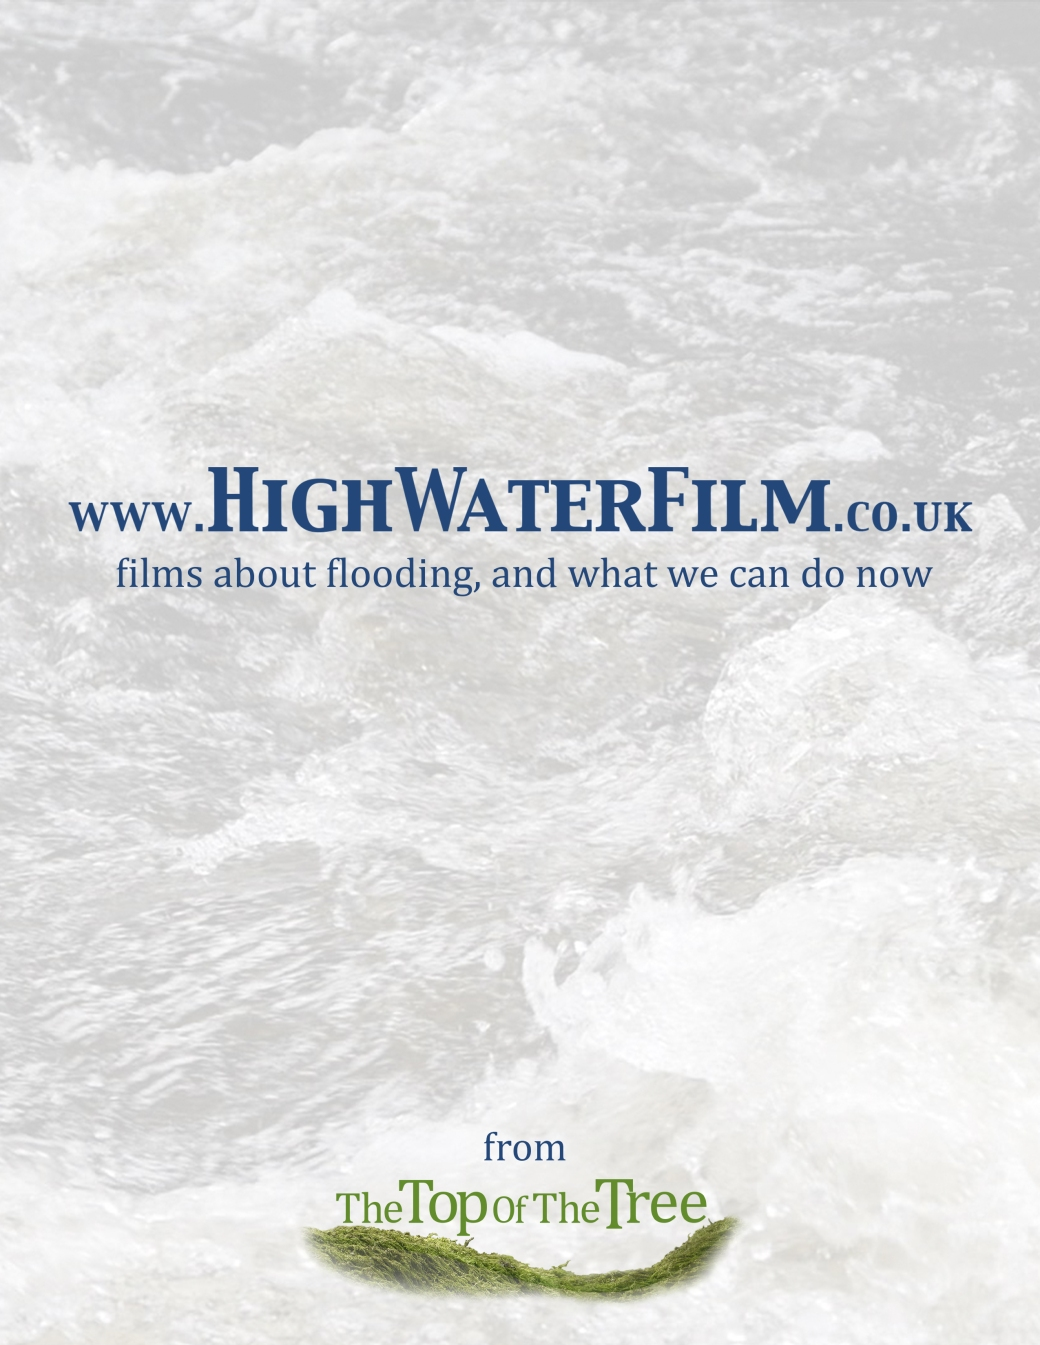 High Water Film: films about flooding, natural flood risk management, and what we can do now